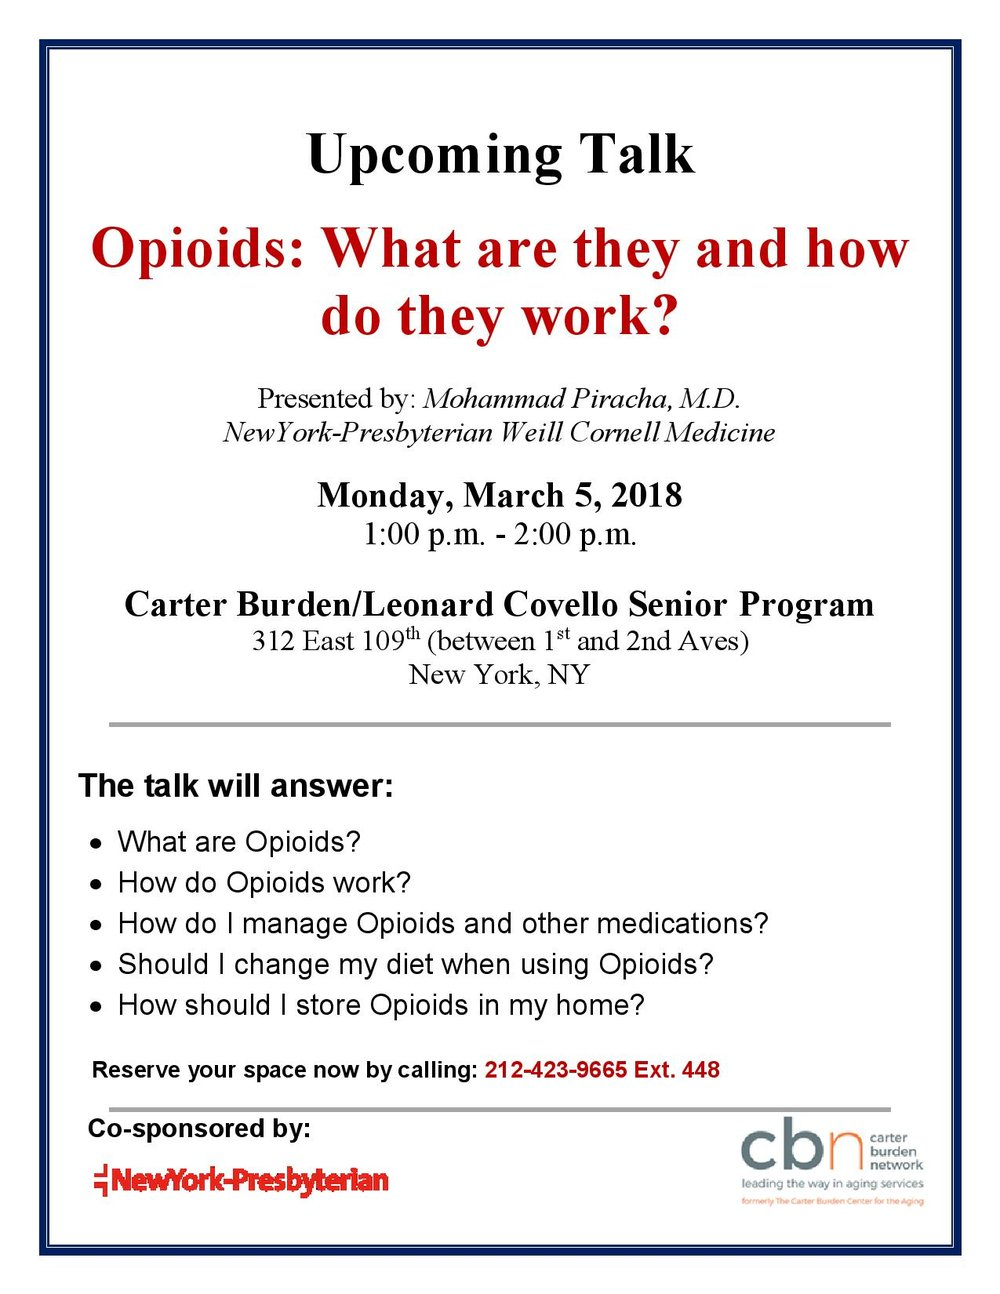 Opioids talk flyer.jpg